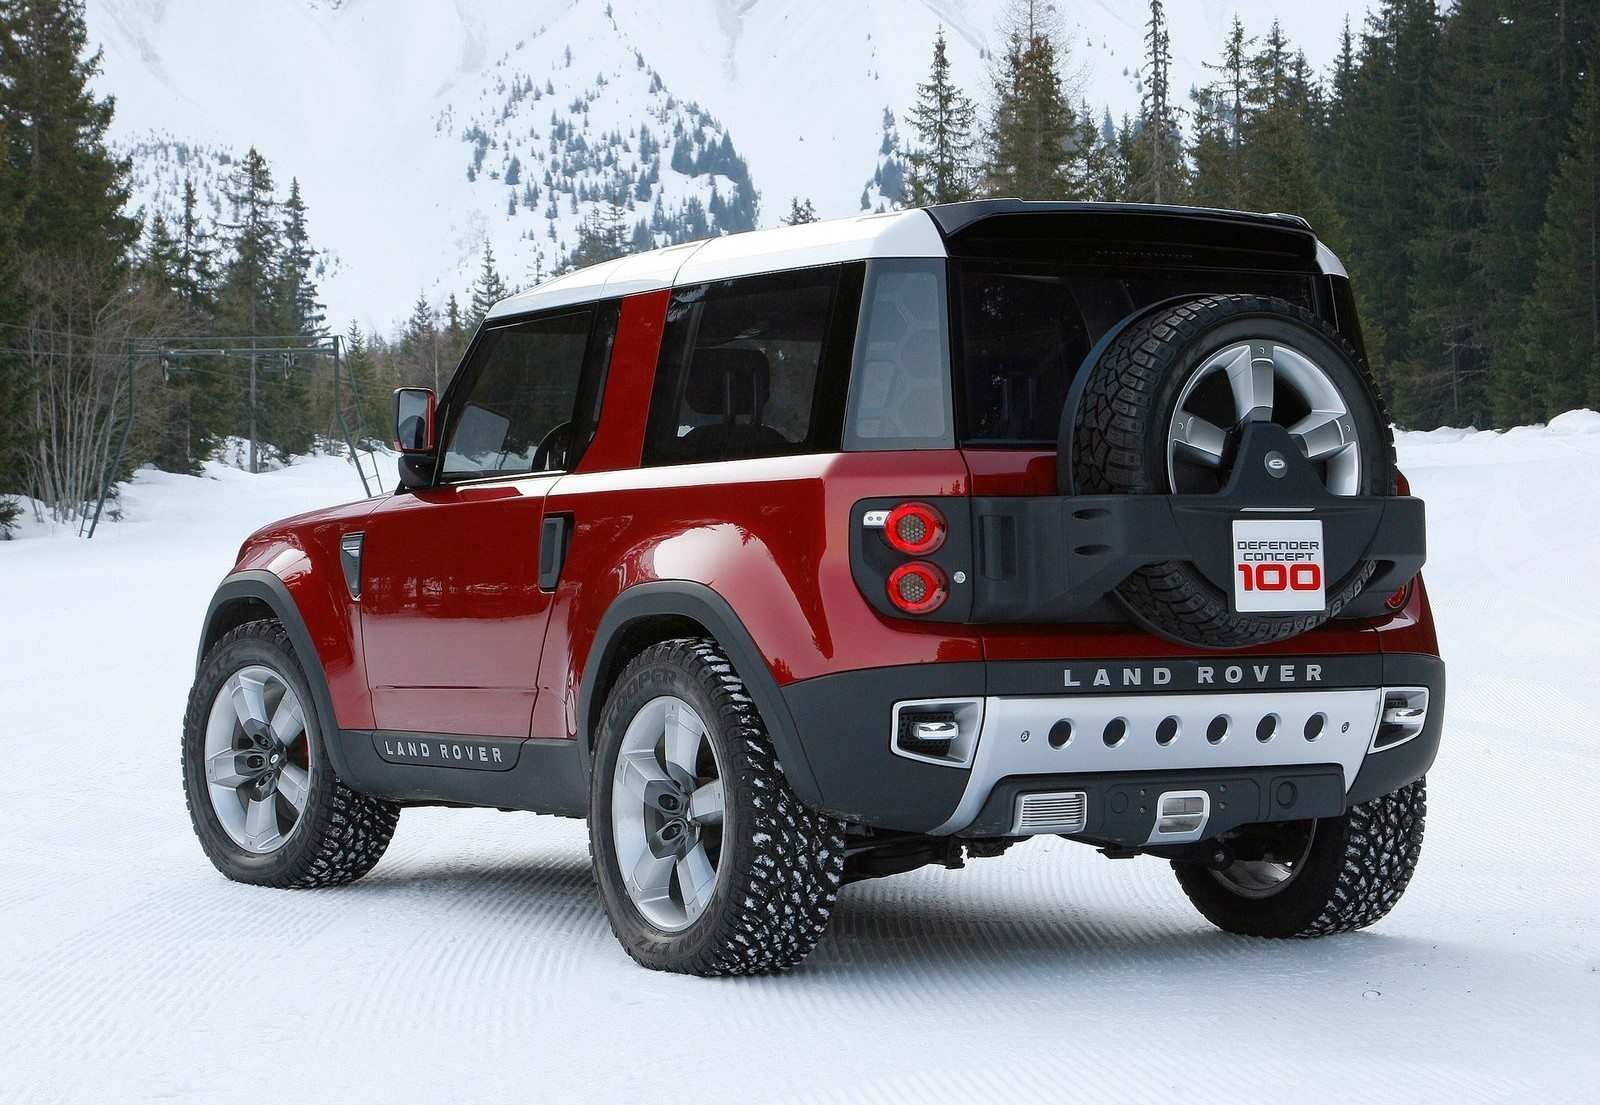 99 Great Land Rover Pickup 2019 Prices for Land Rover Pickup 2019